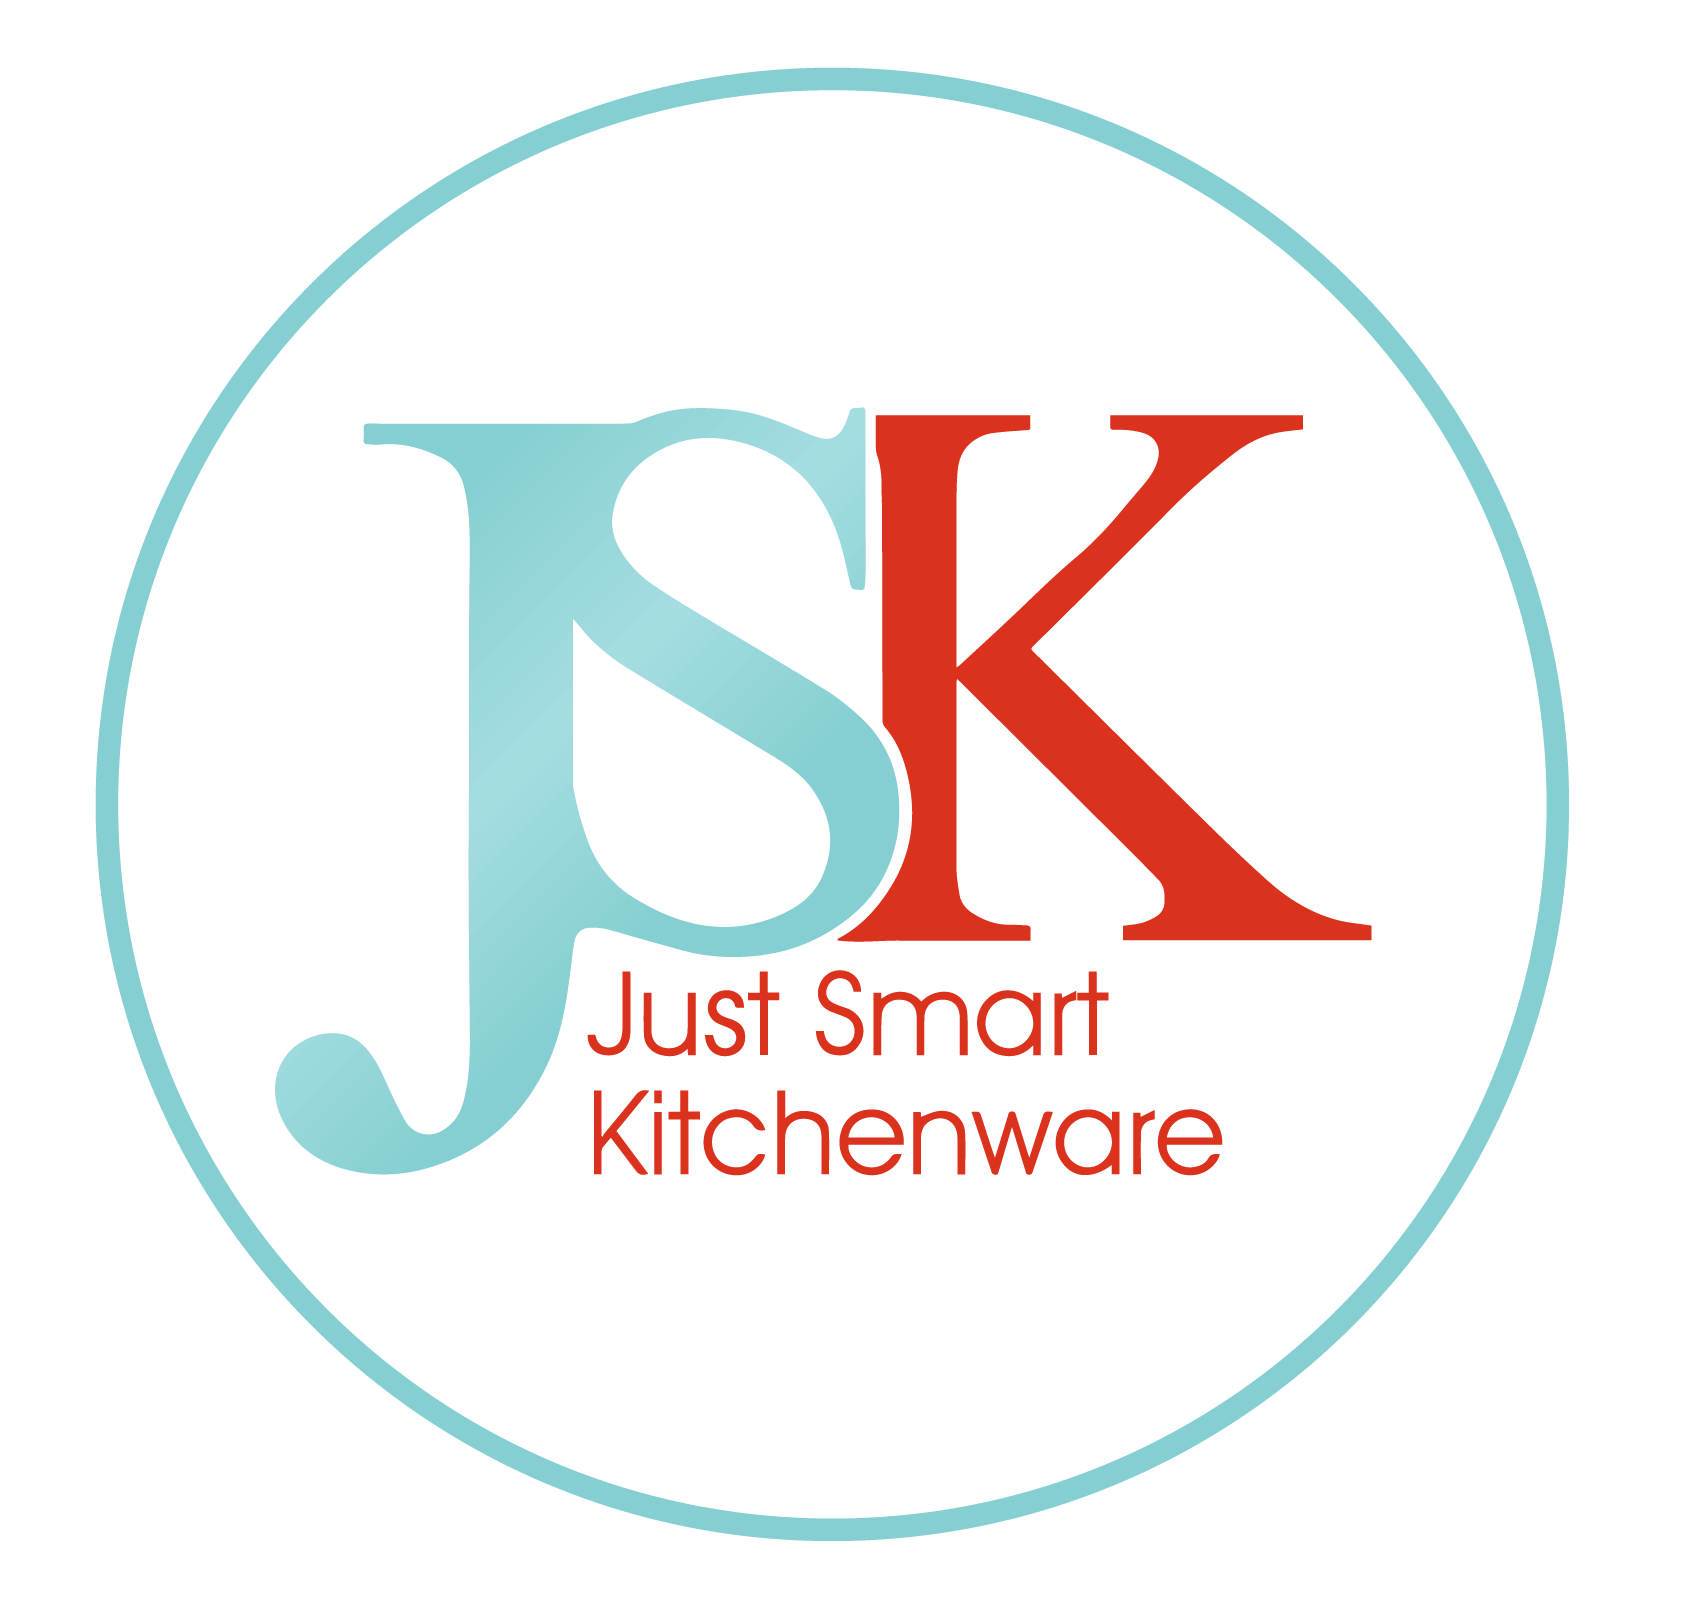 Just Smart Kitchenware